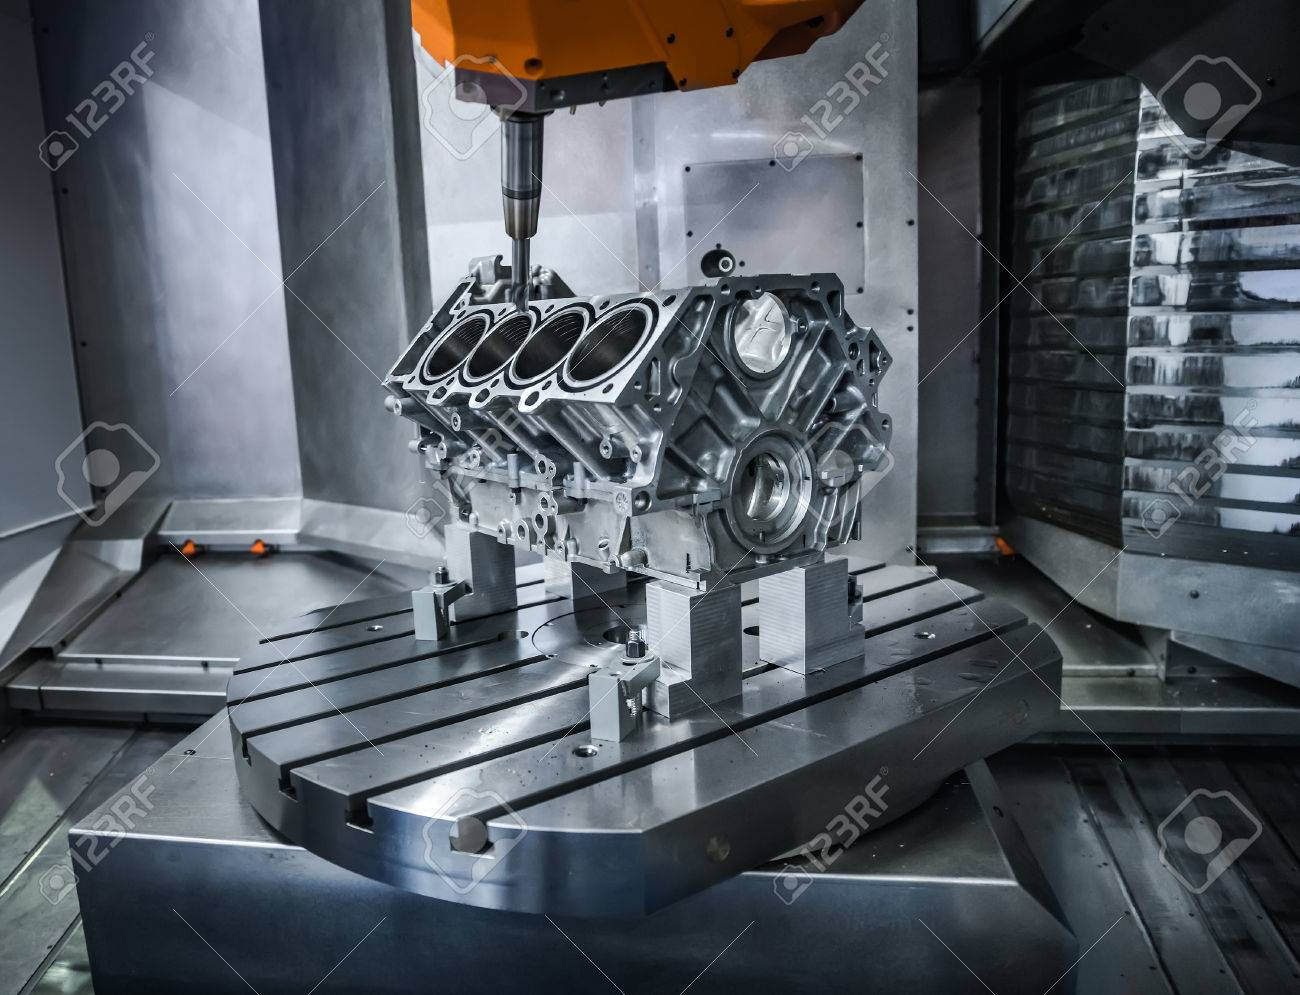 Metalworking CNC milling machine. Cutting metal modern processing technology. Small depth of field. Warning - authentic shooting in challenging conditions. A little bit grain and maybe blurred. - 57580711